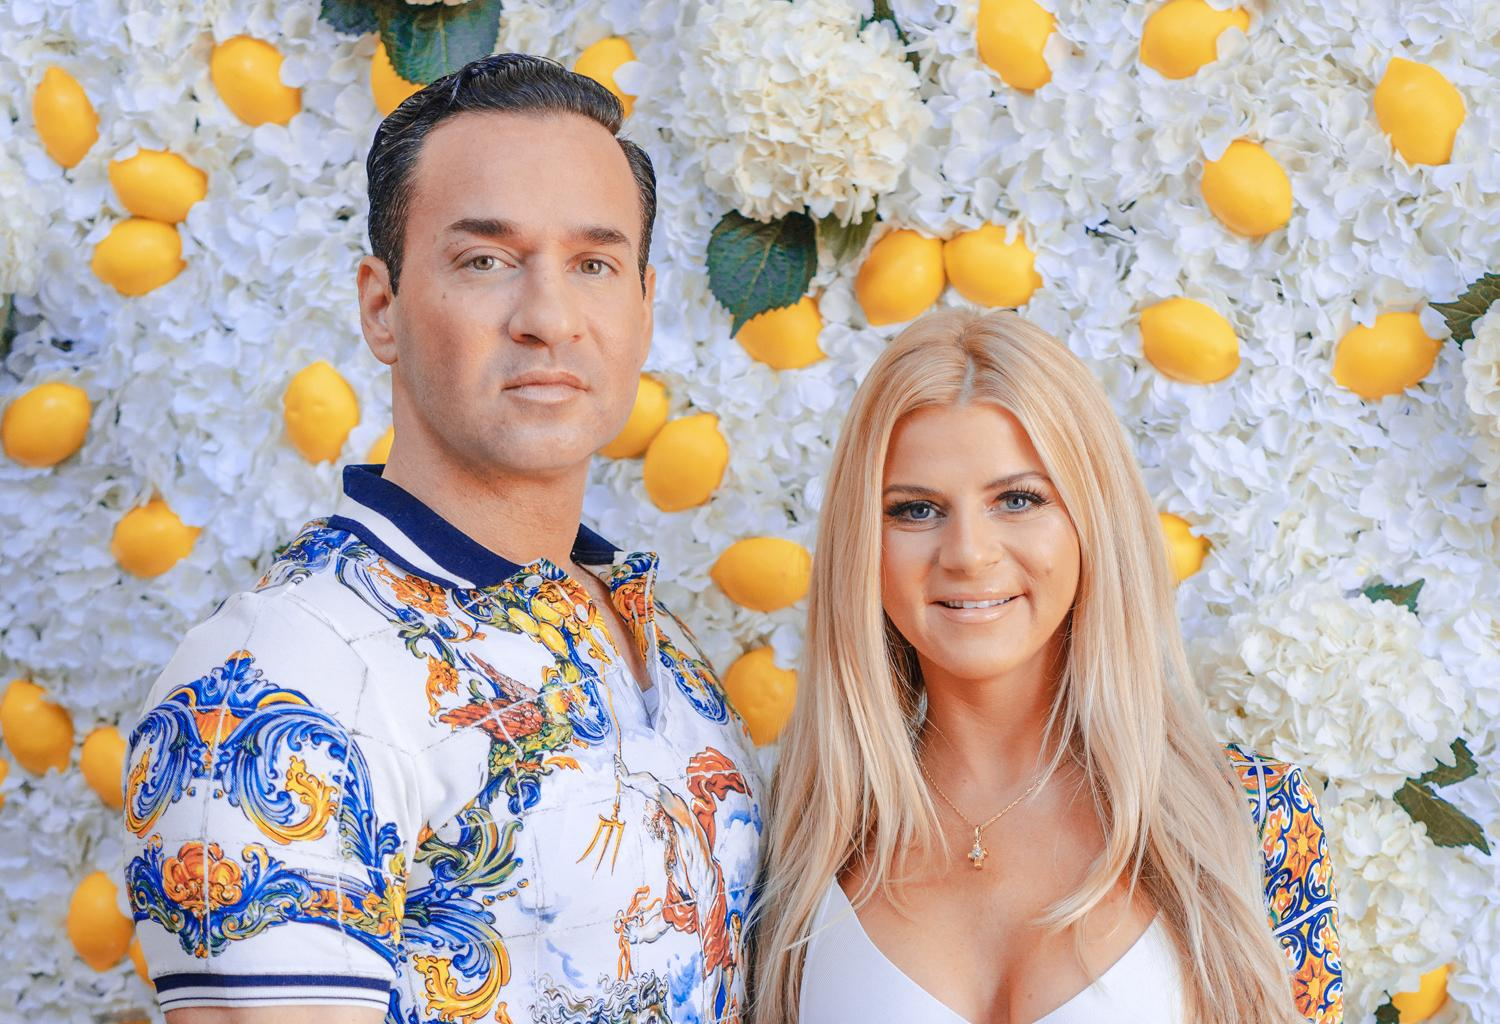 Mike Sorrentino Announces He And His Wife Are Pregnant!